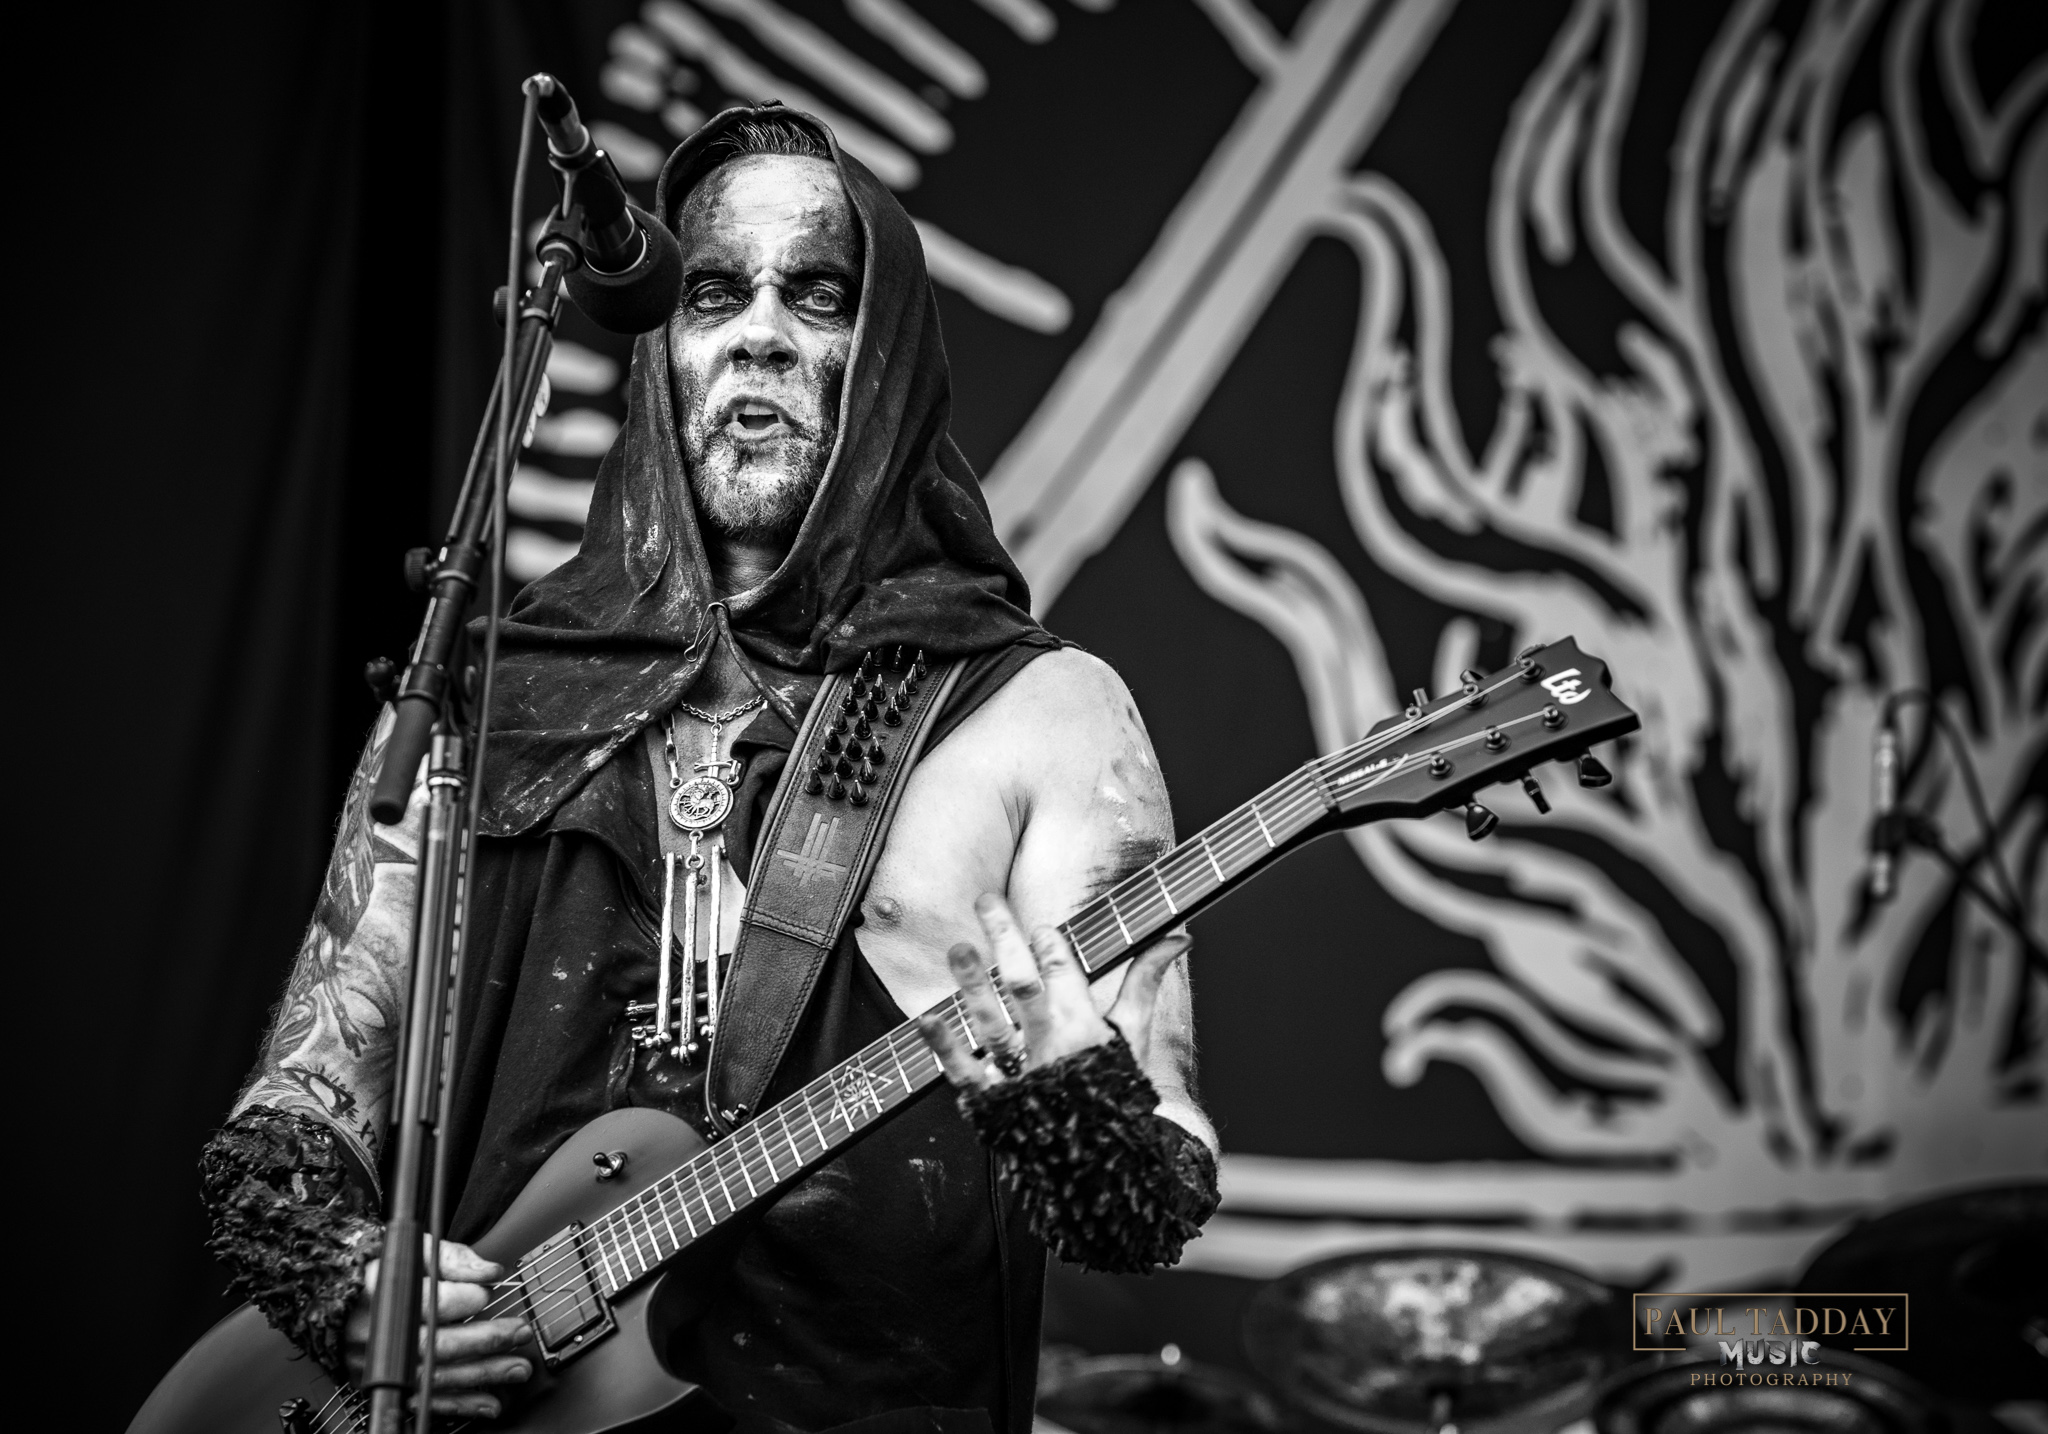 behemoth - download melbourne - march 2019 - web - paul tadday photography - 18.jpg